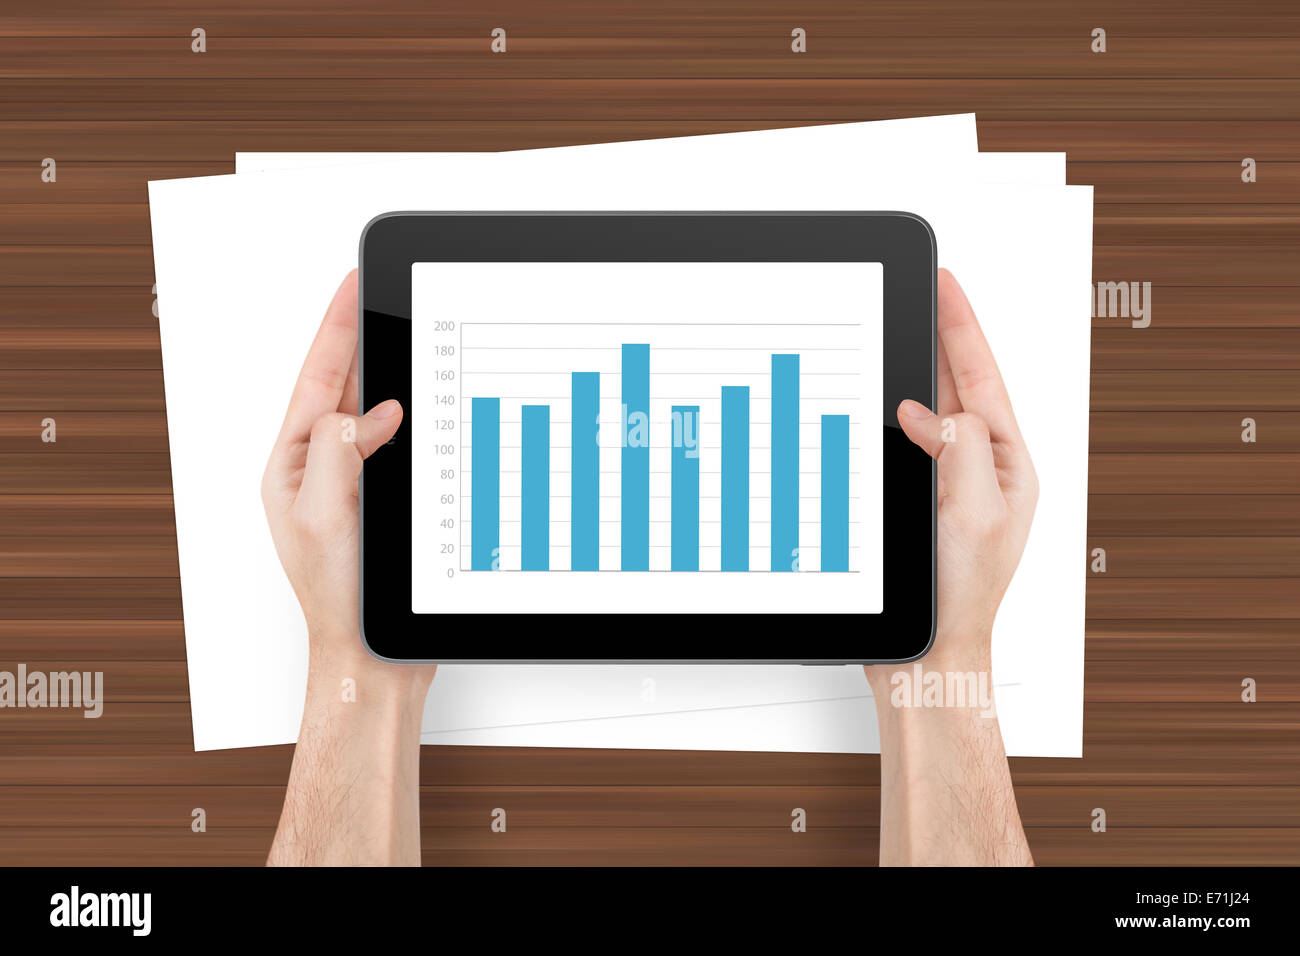 Hand holding digital tablet with bar chart graphic and white, blank note sheet on wooden background. - Stock Image